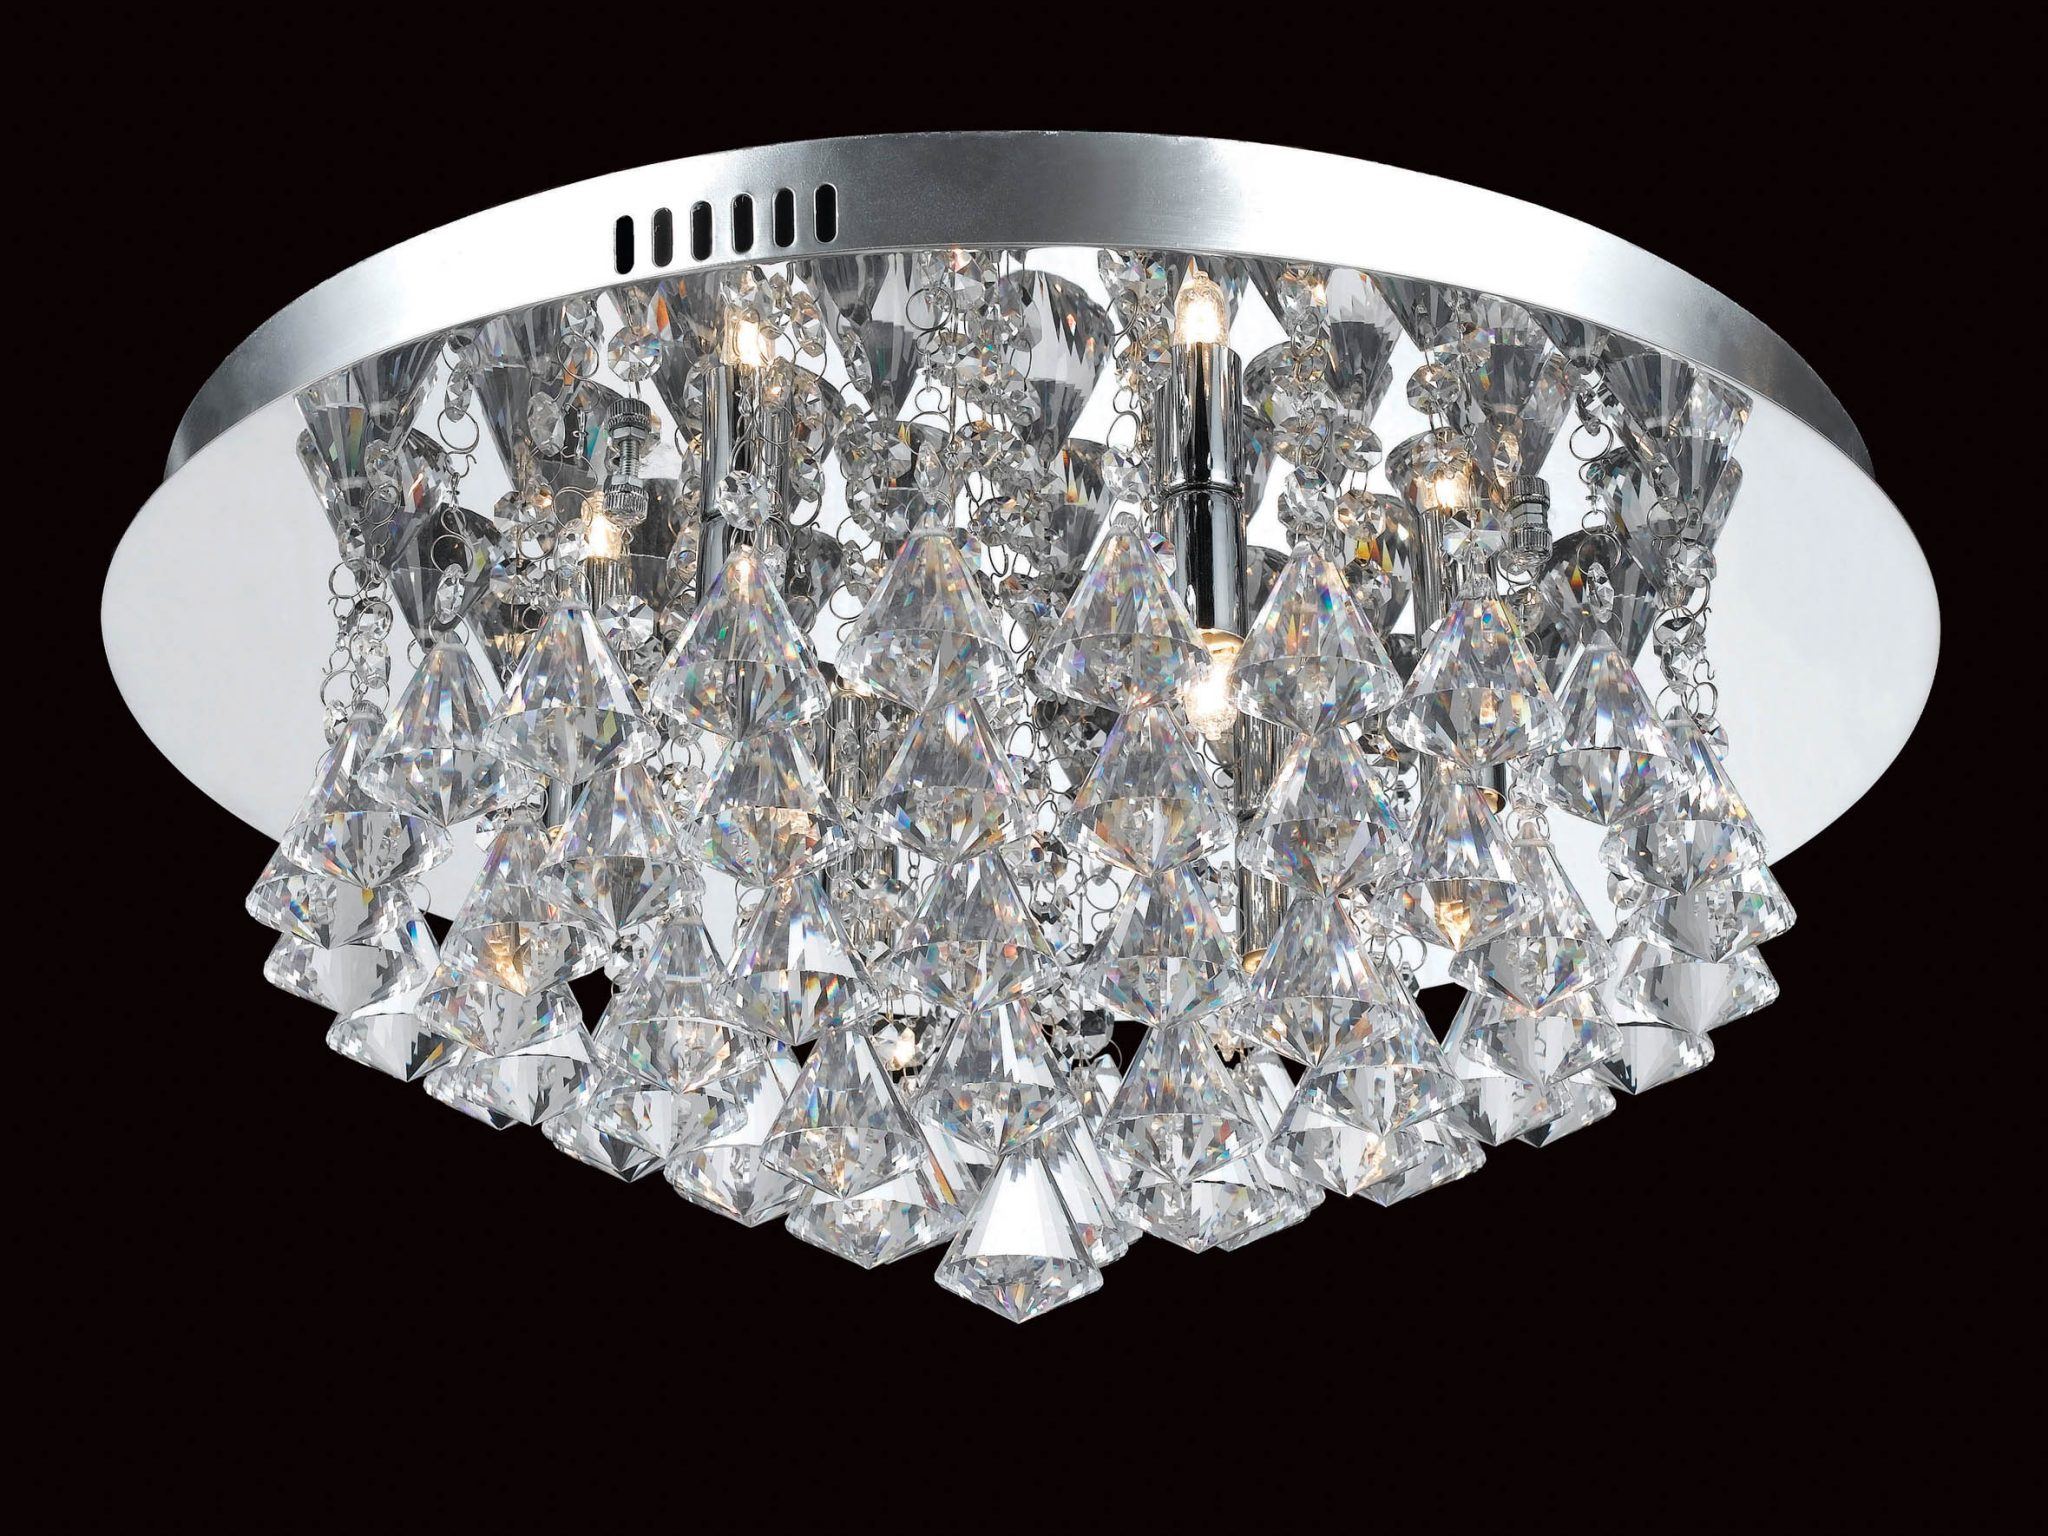 Impex CFH011025/06/CH Parma 6 light Low Ceiling Fitting, Chrome